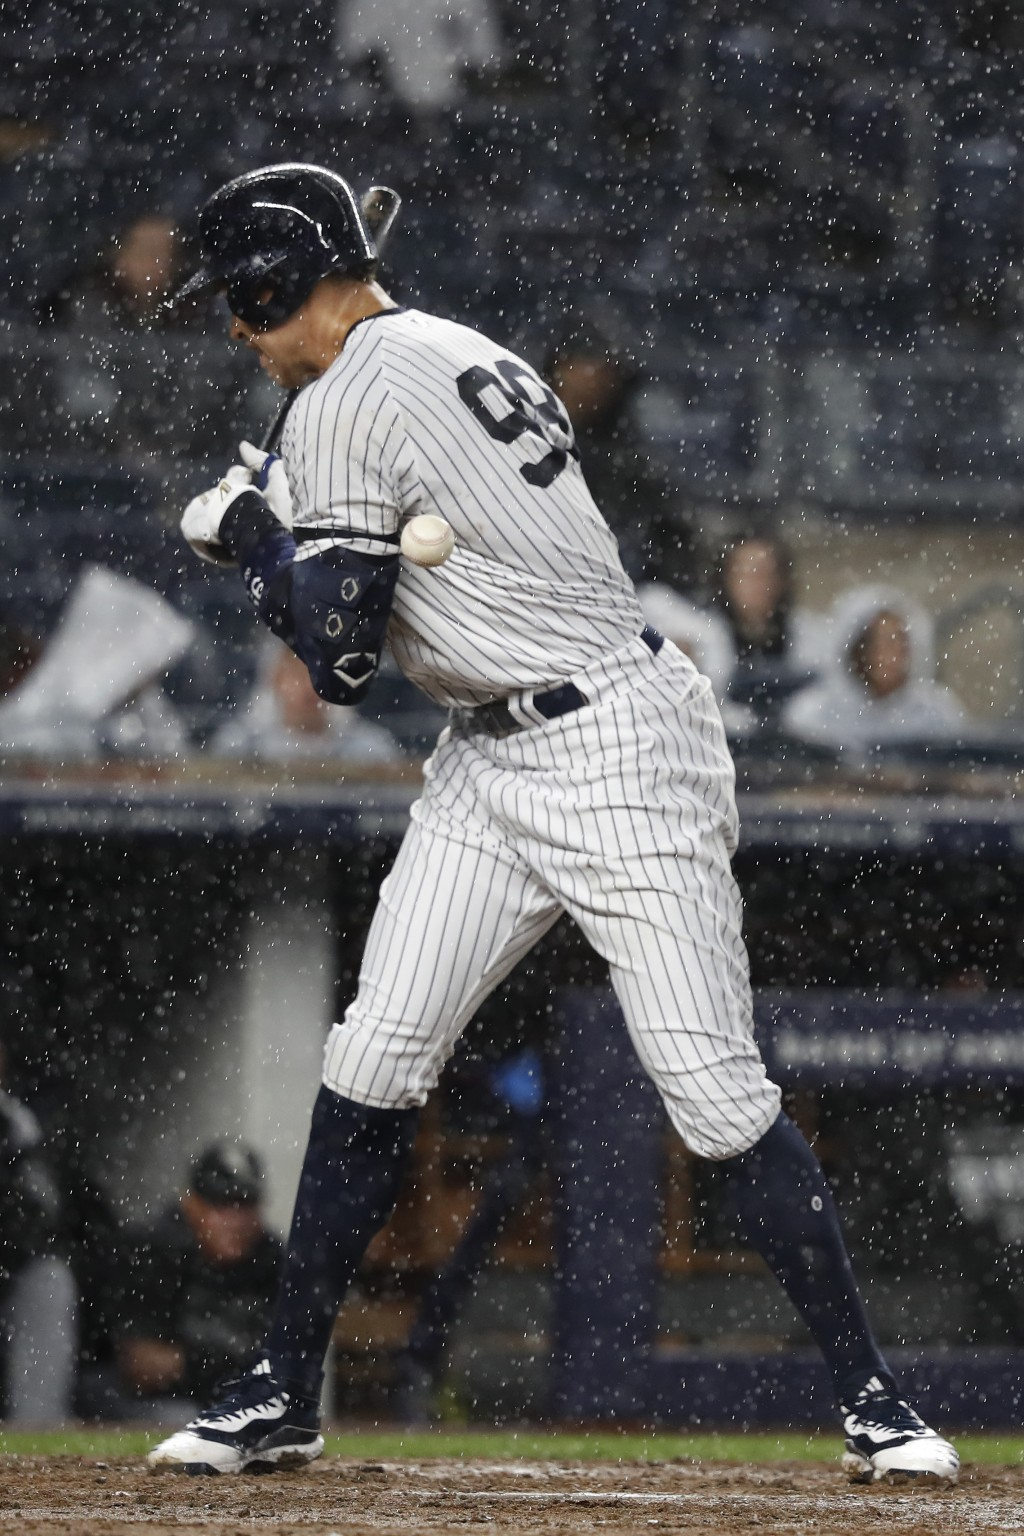 New York Yankees Aaron Judge is hit by a pitch thrown by Chicago White Sox reliever Nate Jones during the sixth inning of a baseball game Friday, Apri